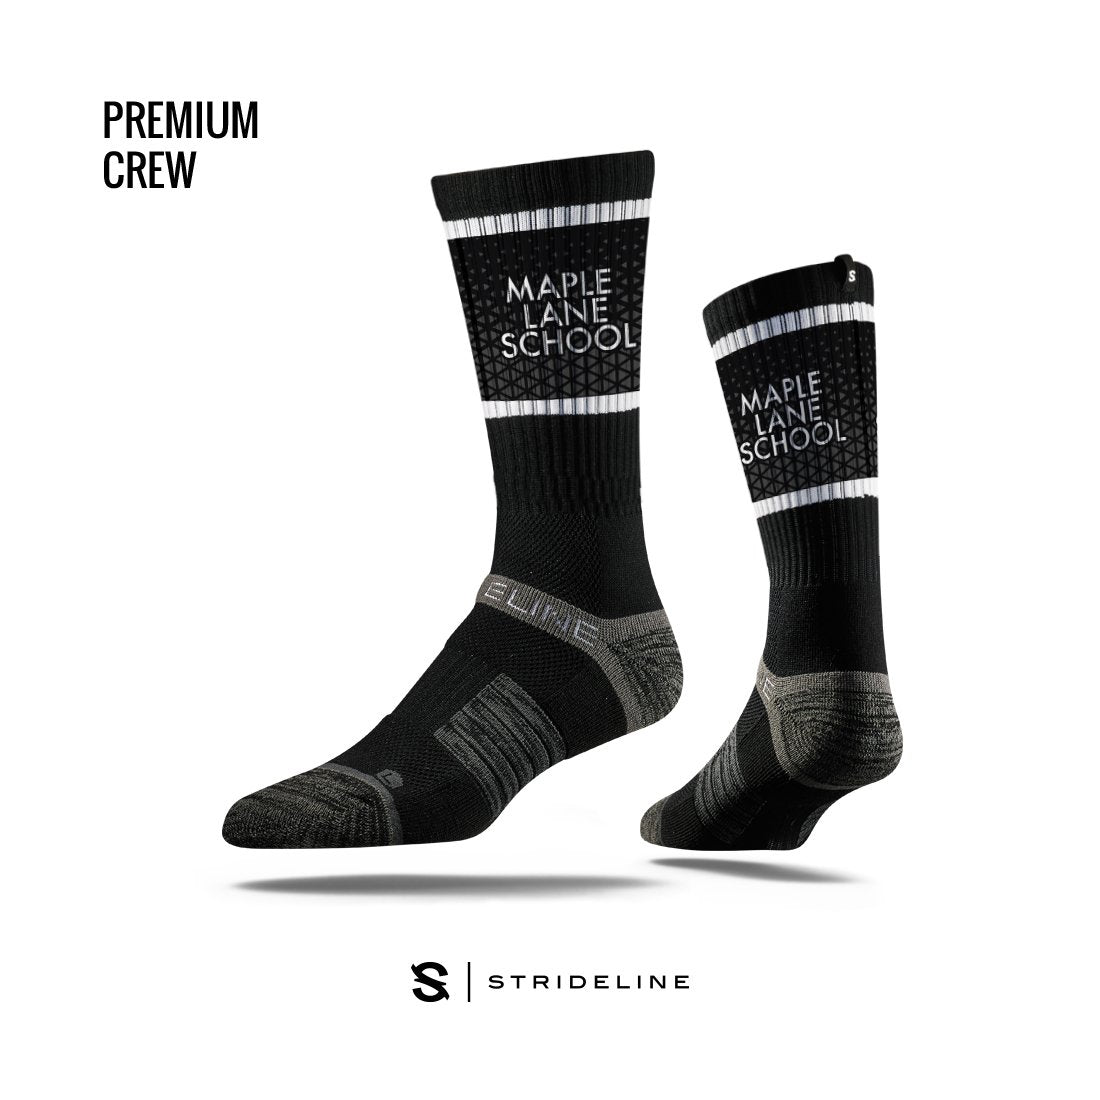 Maple Lane School Apparel | Socks | Premium